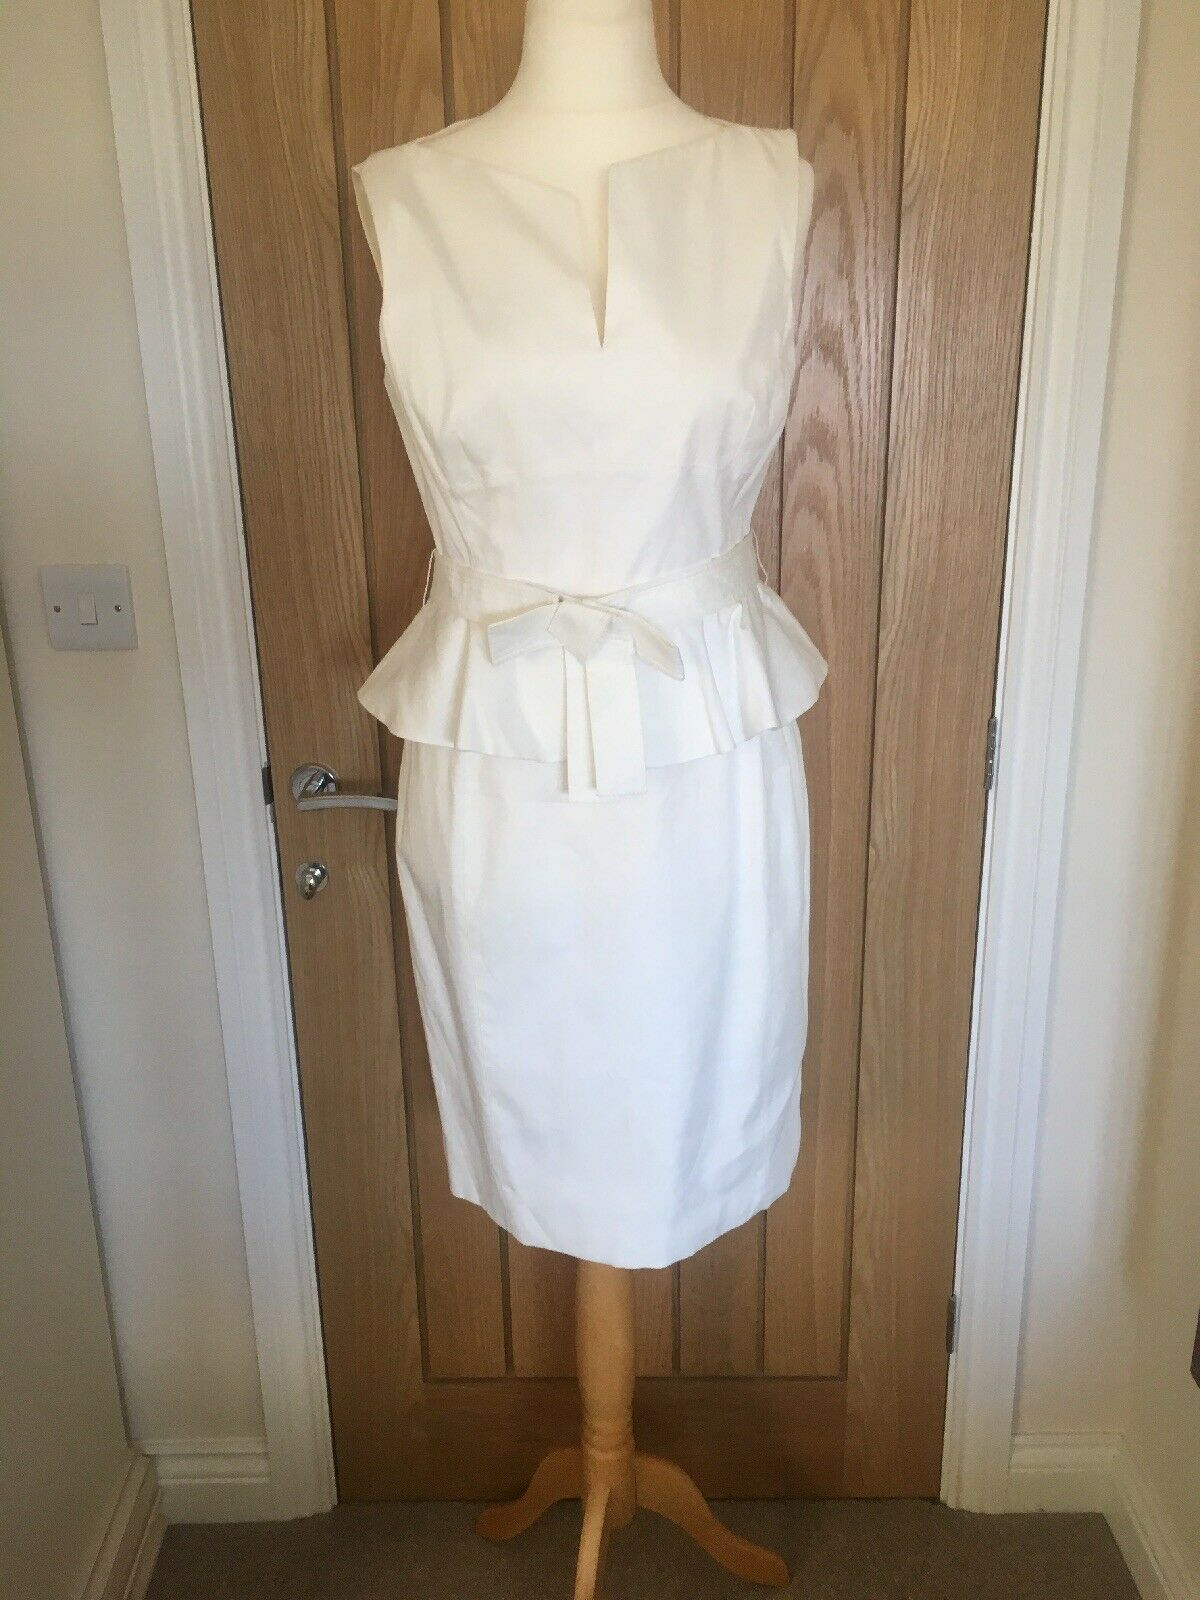 KAREN MILLEN PEPLUM DRESS SIZE 14